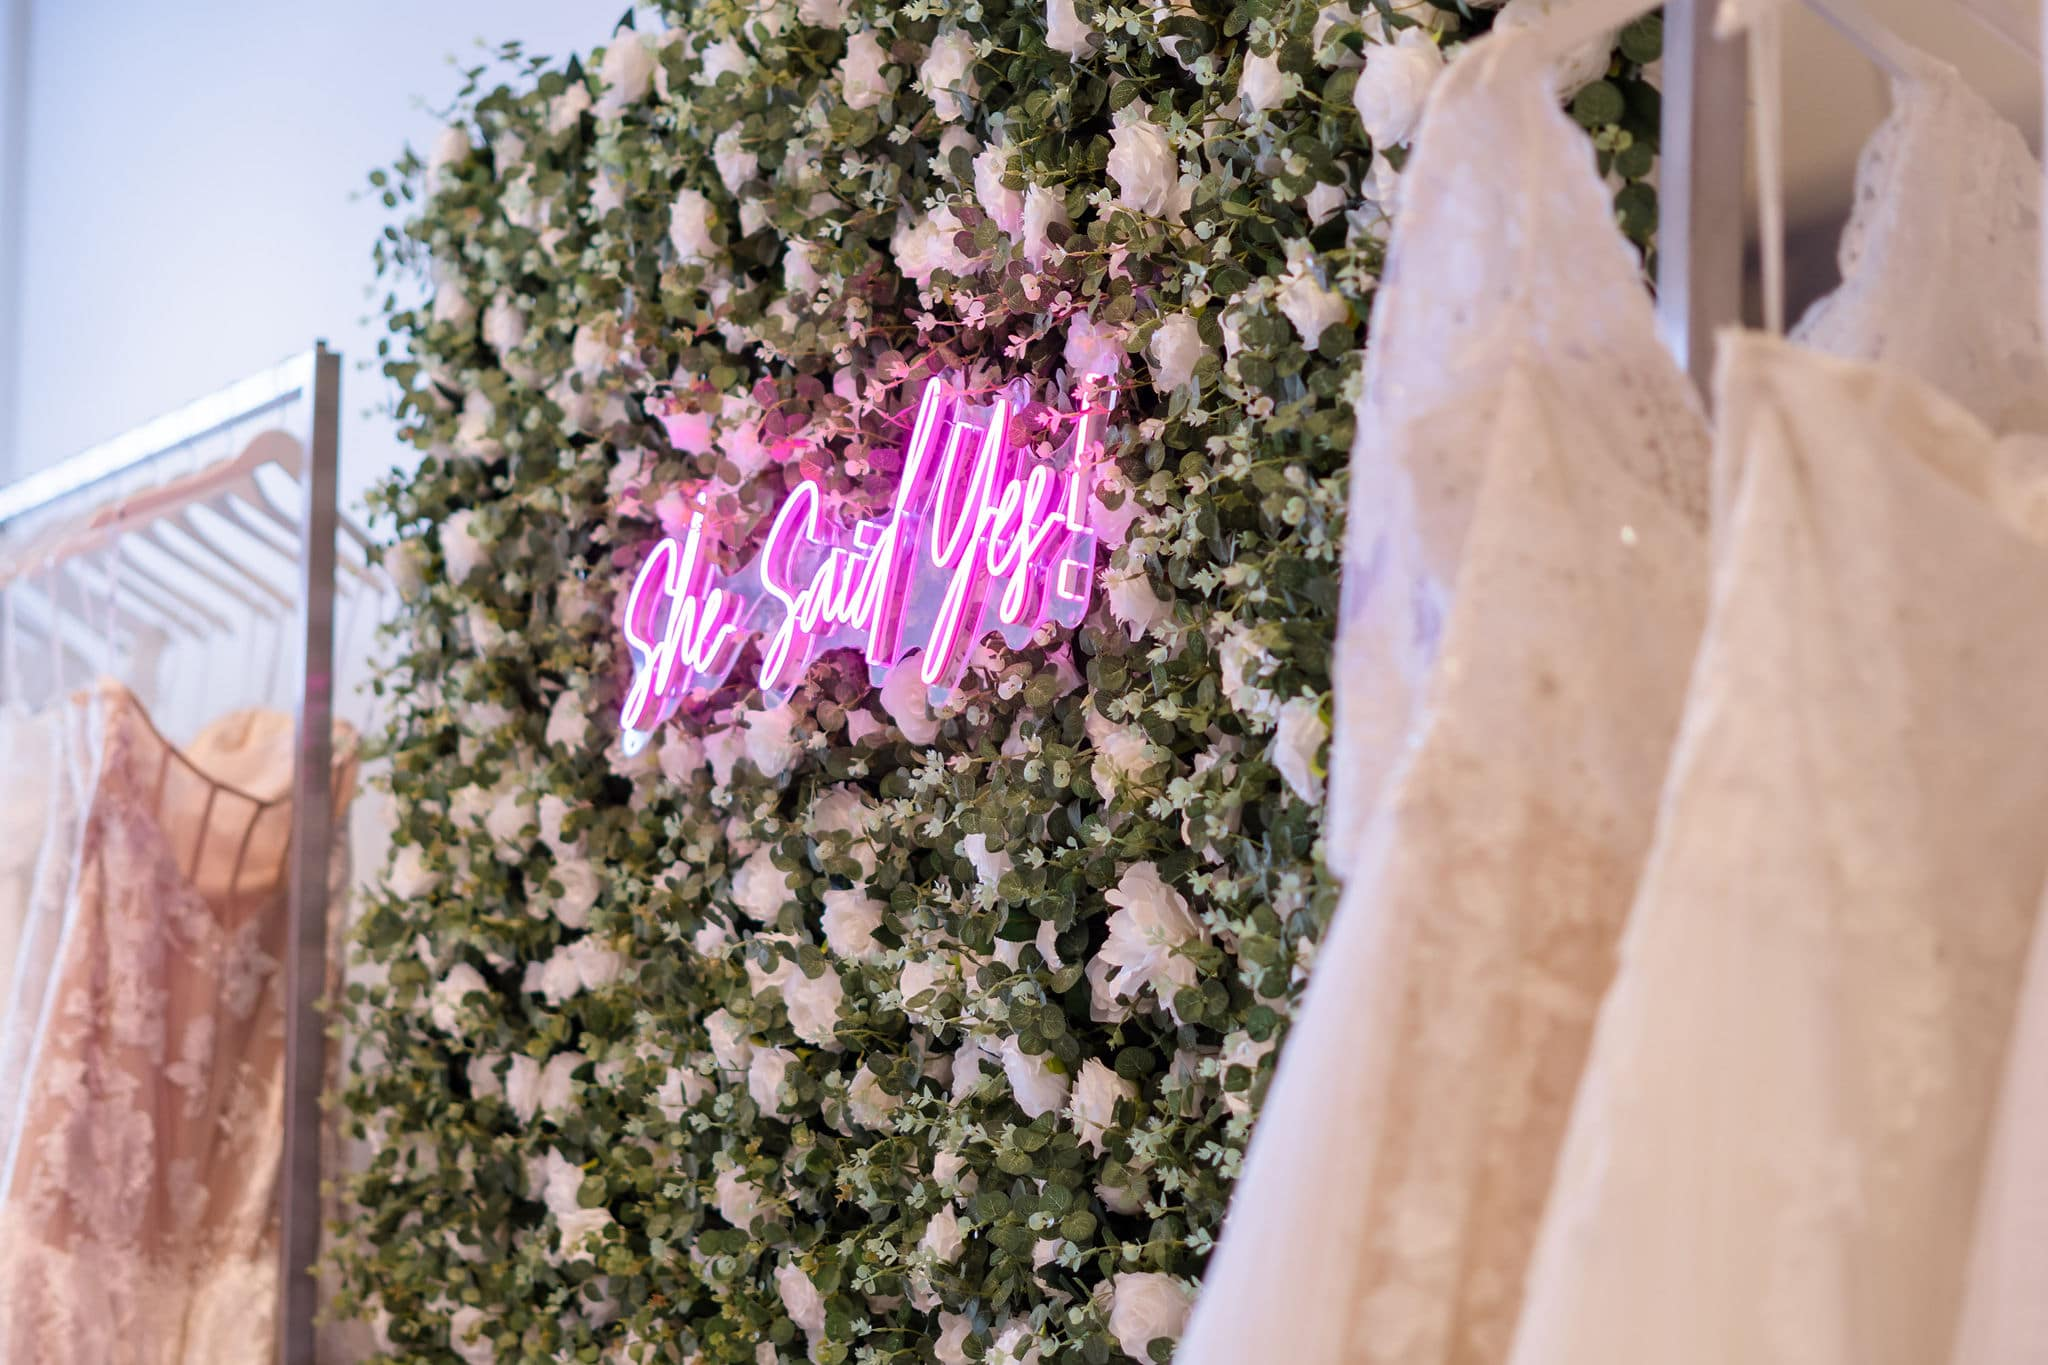 artificial flower wall in orlando with neon sign